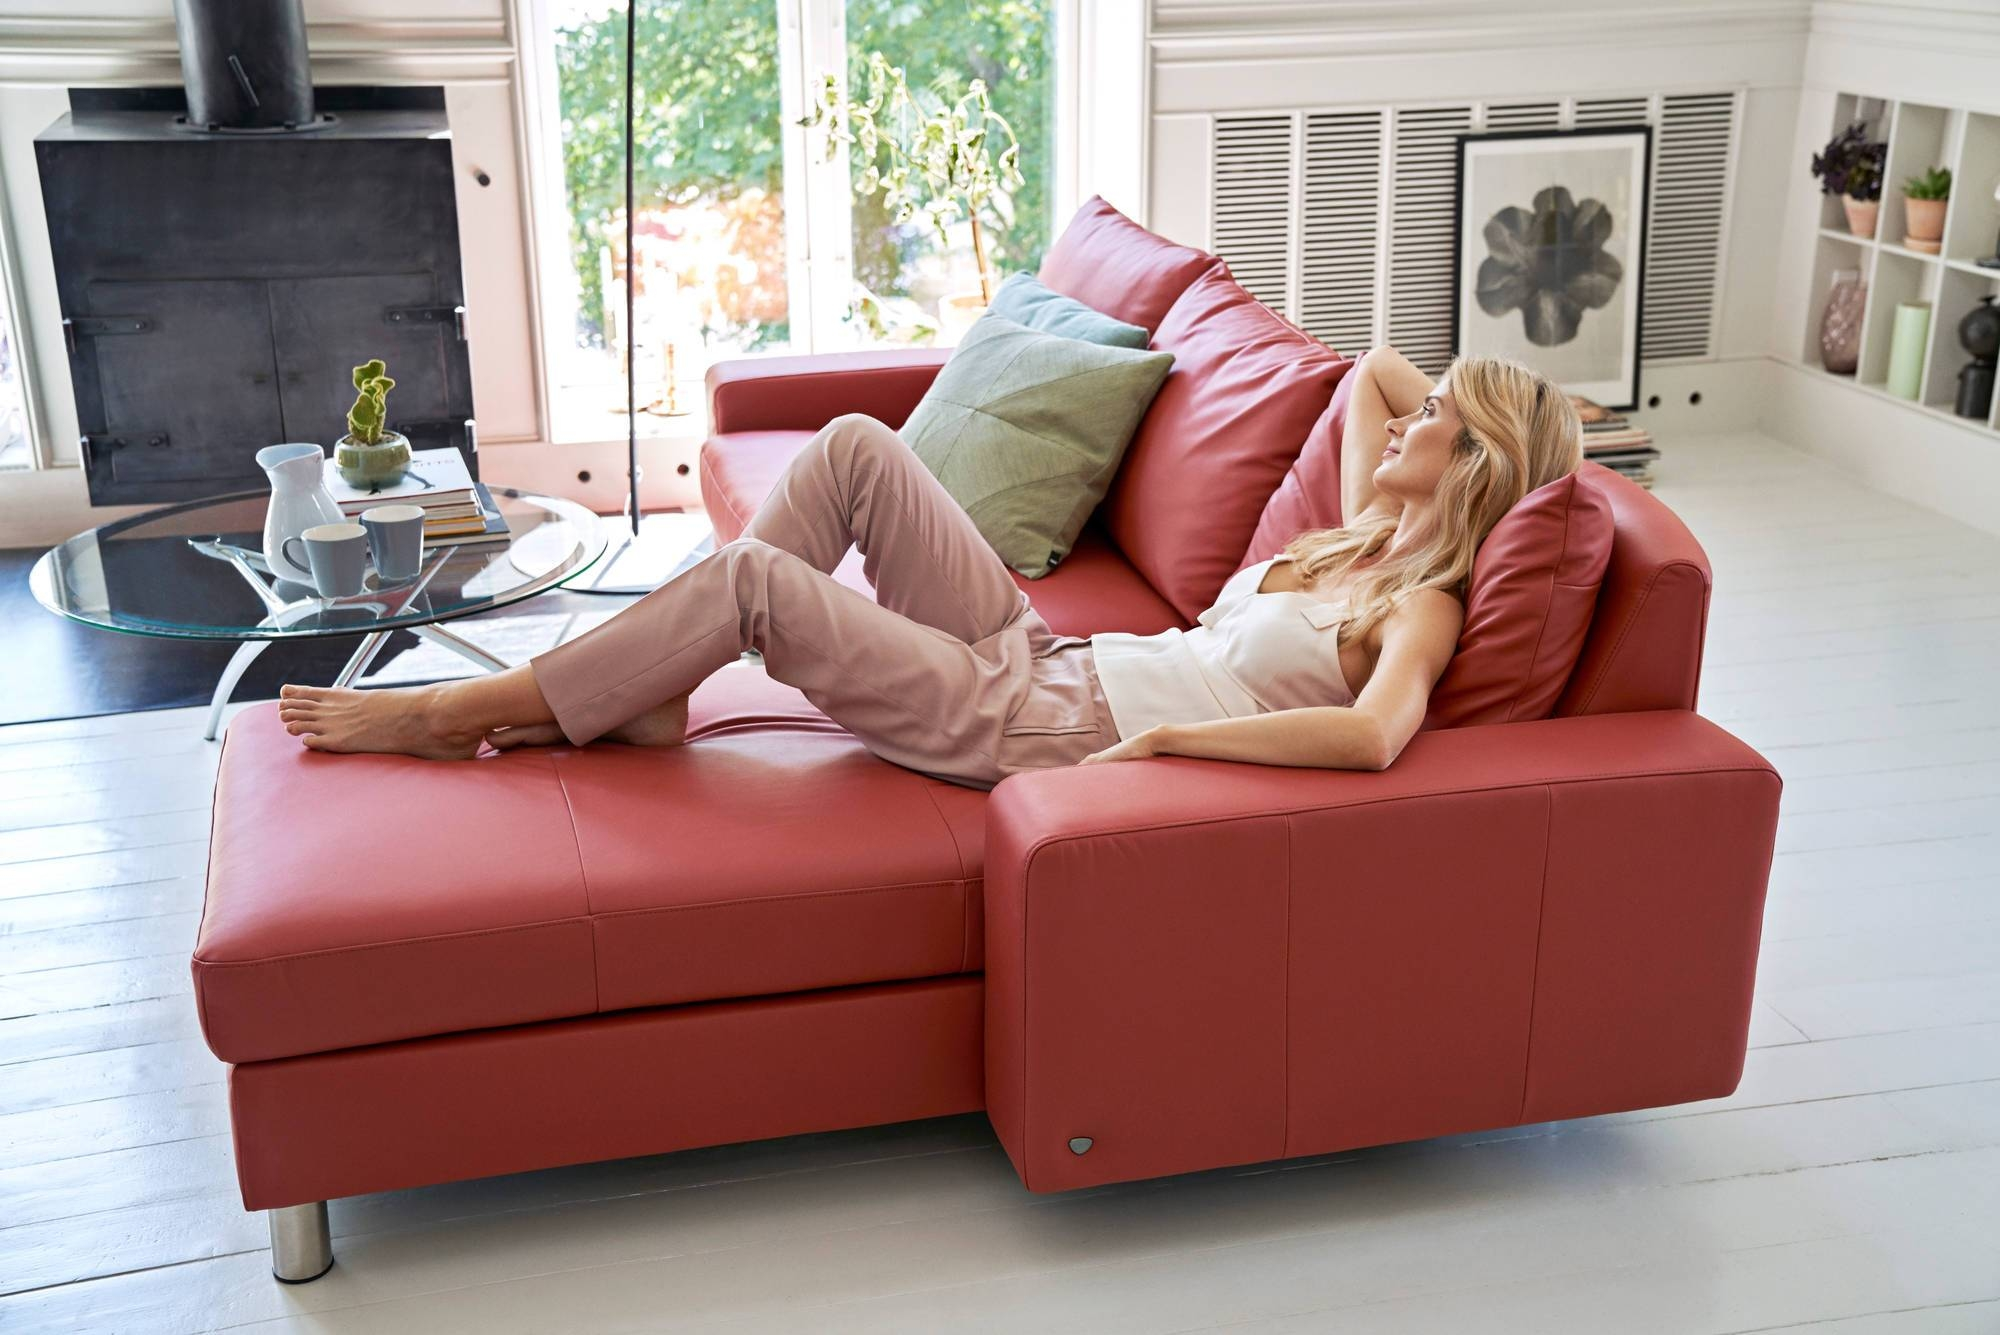 The #1 Ekornes Stressless Chairs & Recliners Dealer - Best Prices regarding Ekornes Sectional Sofa (Image 30 of 30)